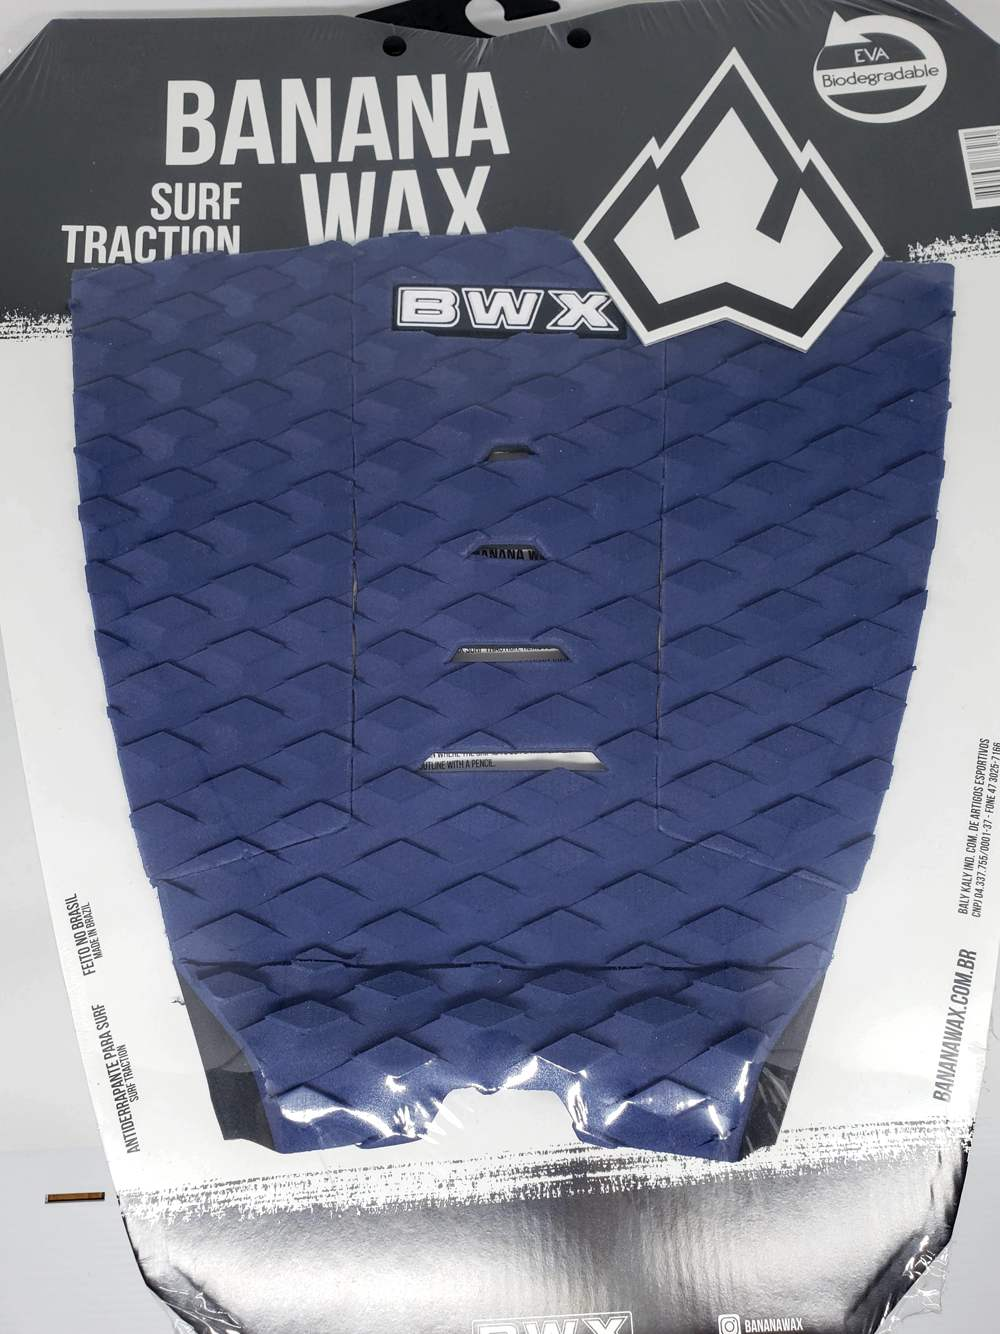 Deck Banana Wax Surf Traction Azul